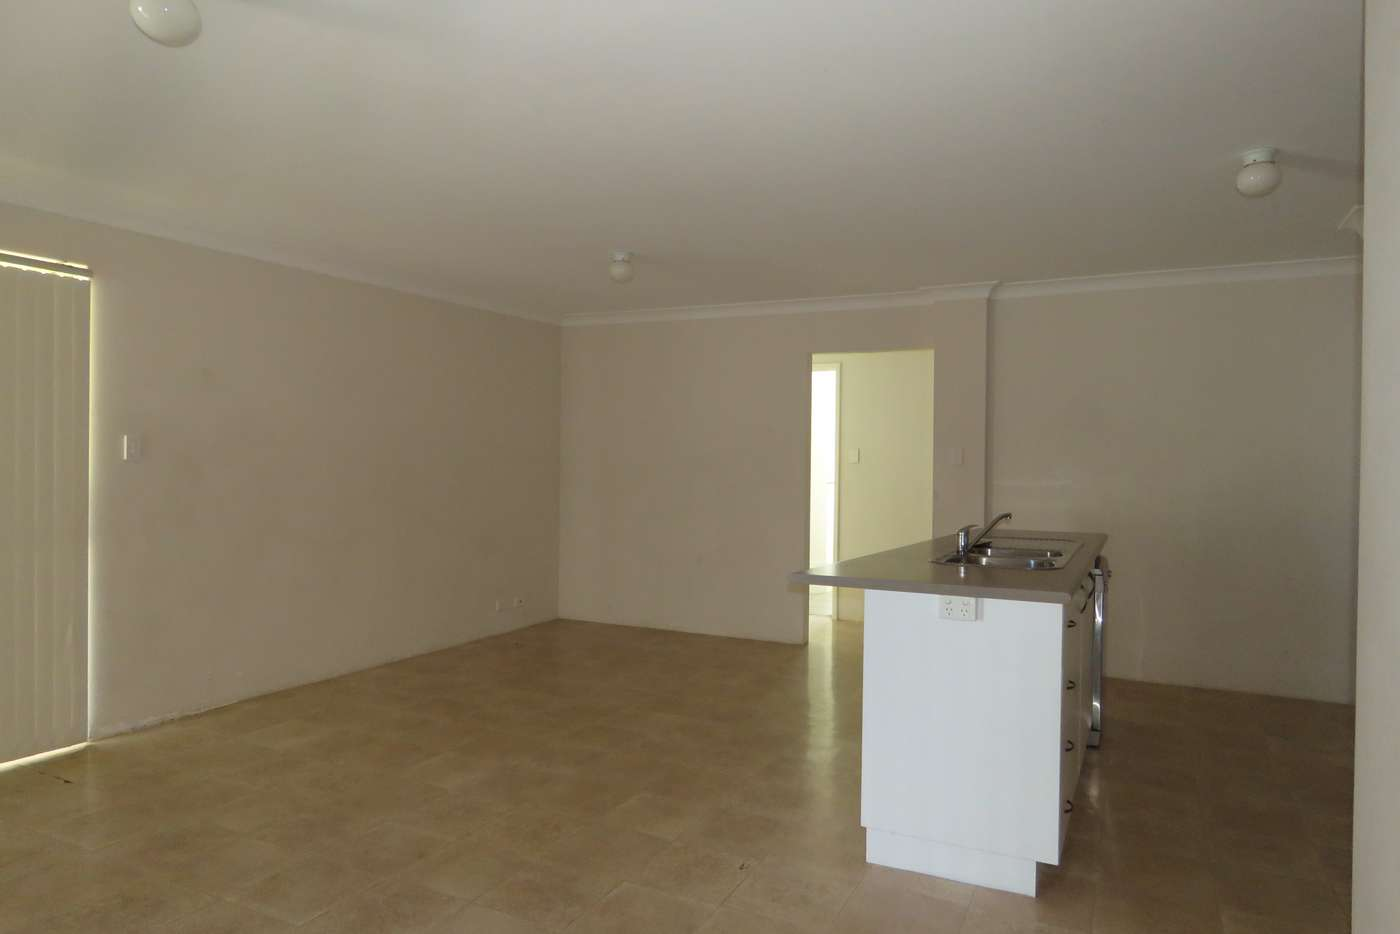 Seventh view of Homely house listing, 1 Forrest Street, Beverley WA 6304